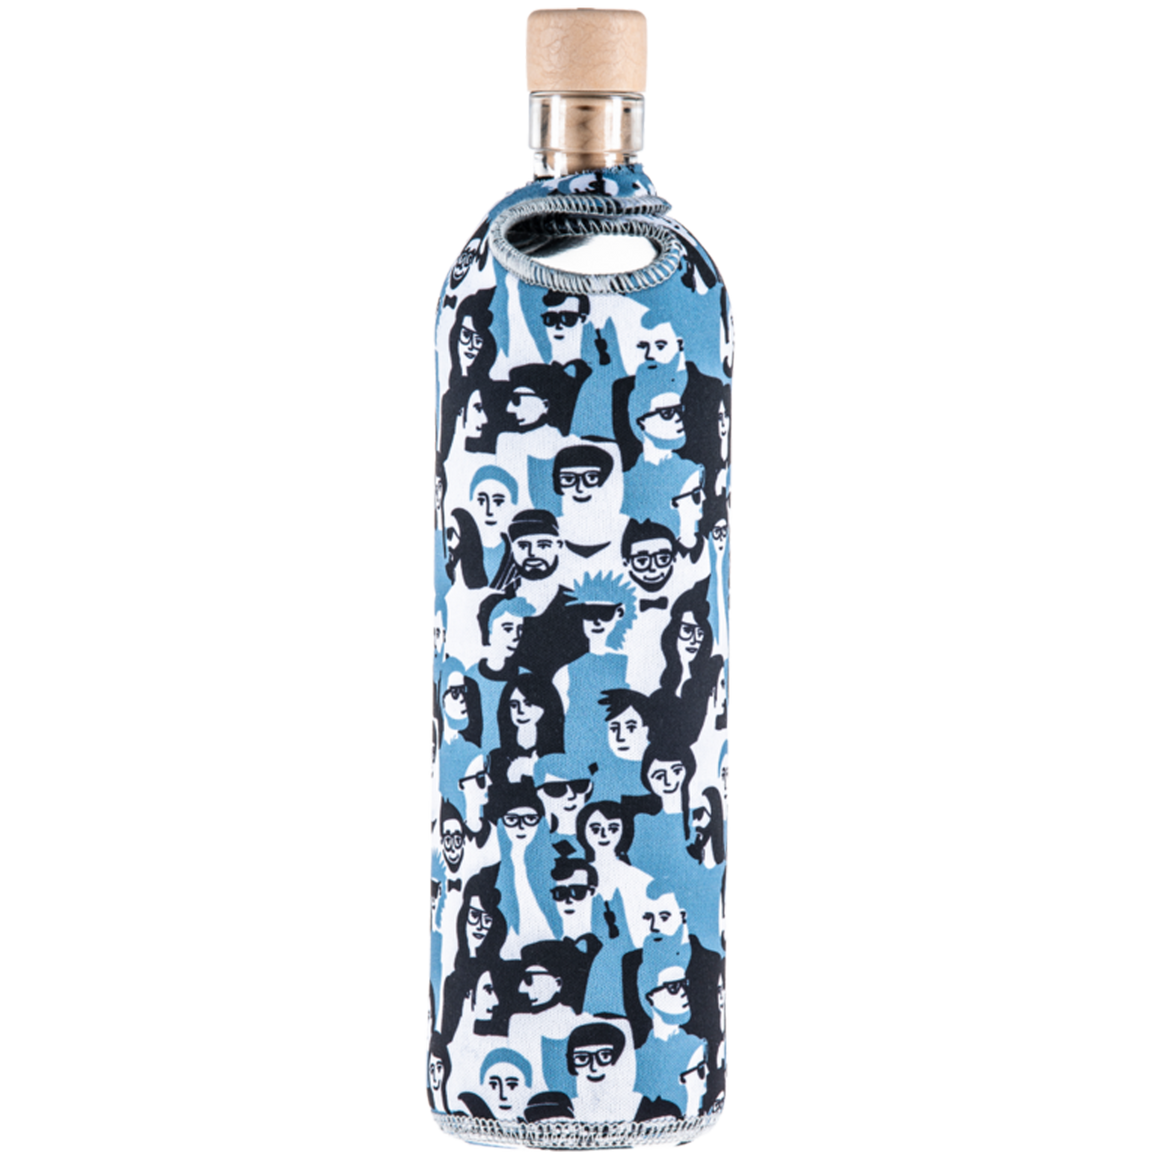 Neo Design - Companions (750 ml) - Aldha